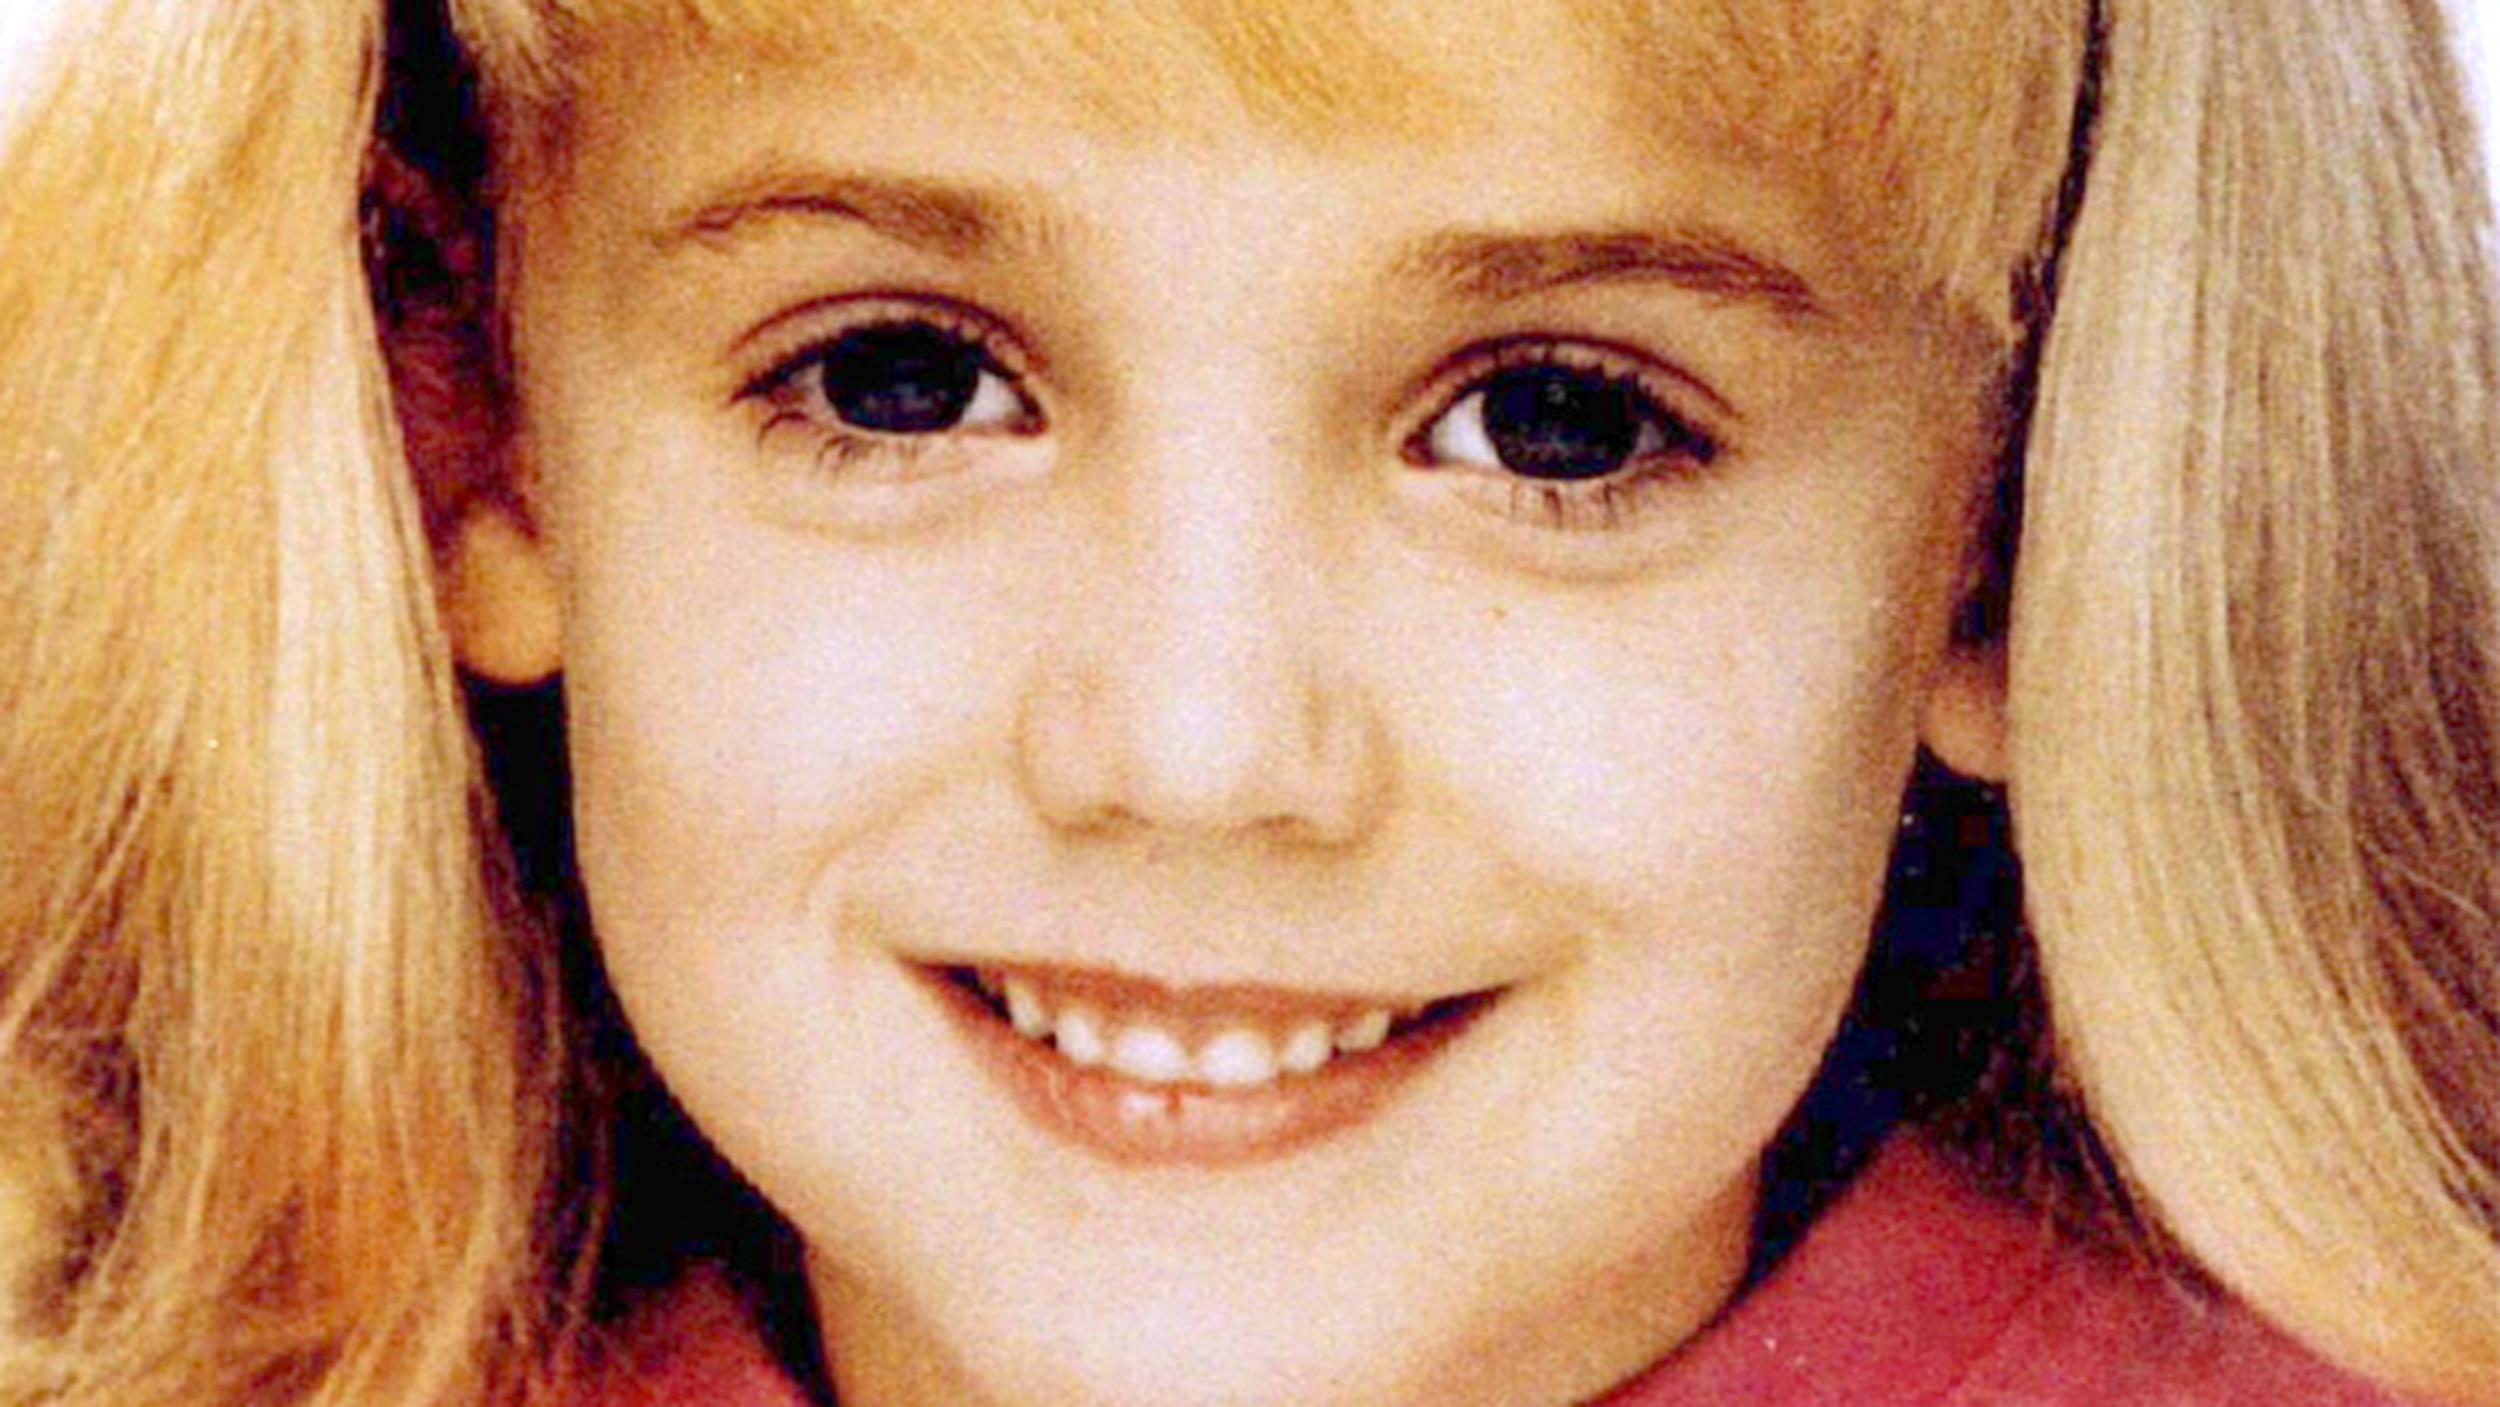 Unsolved case of JonBenet Ramsey continues to raise ...